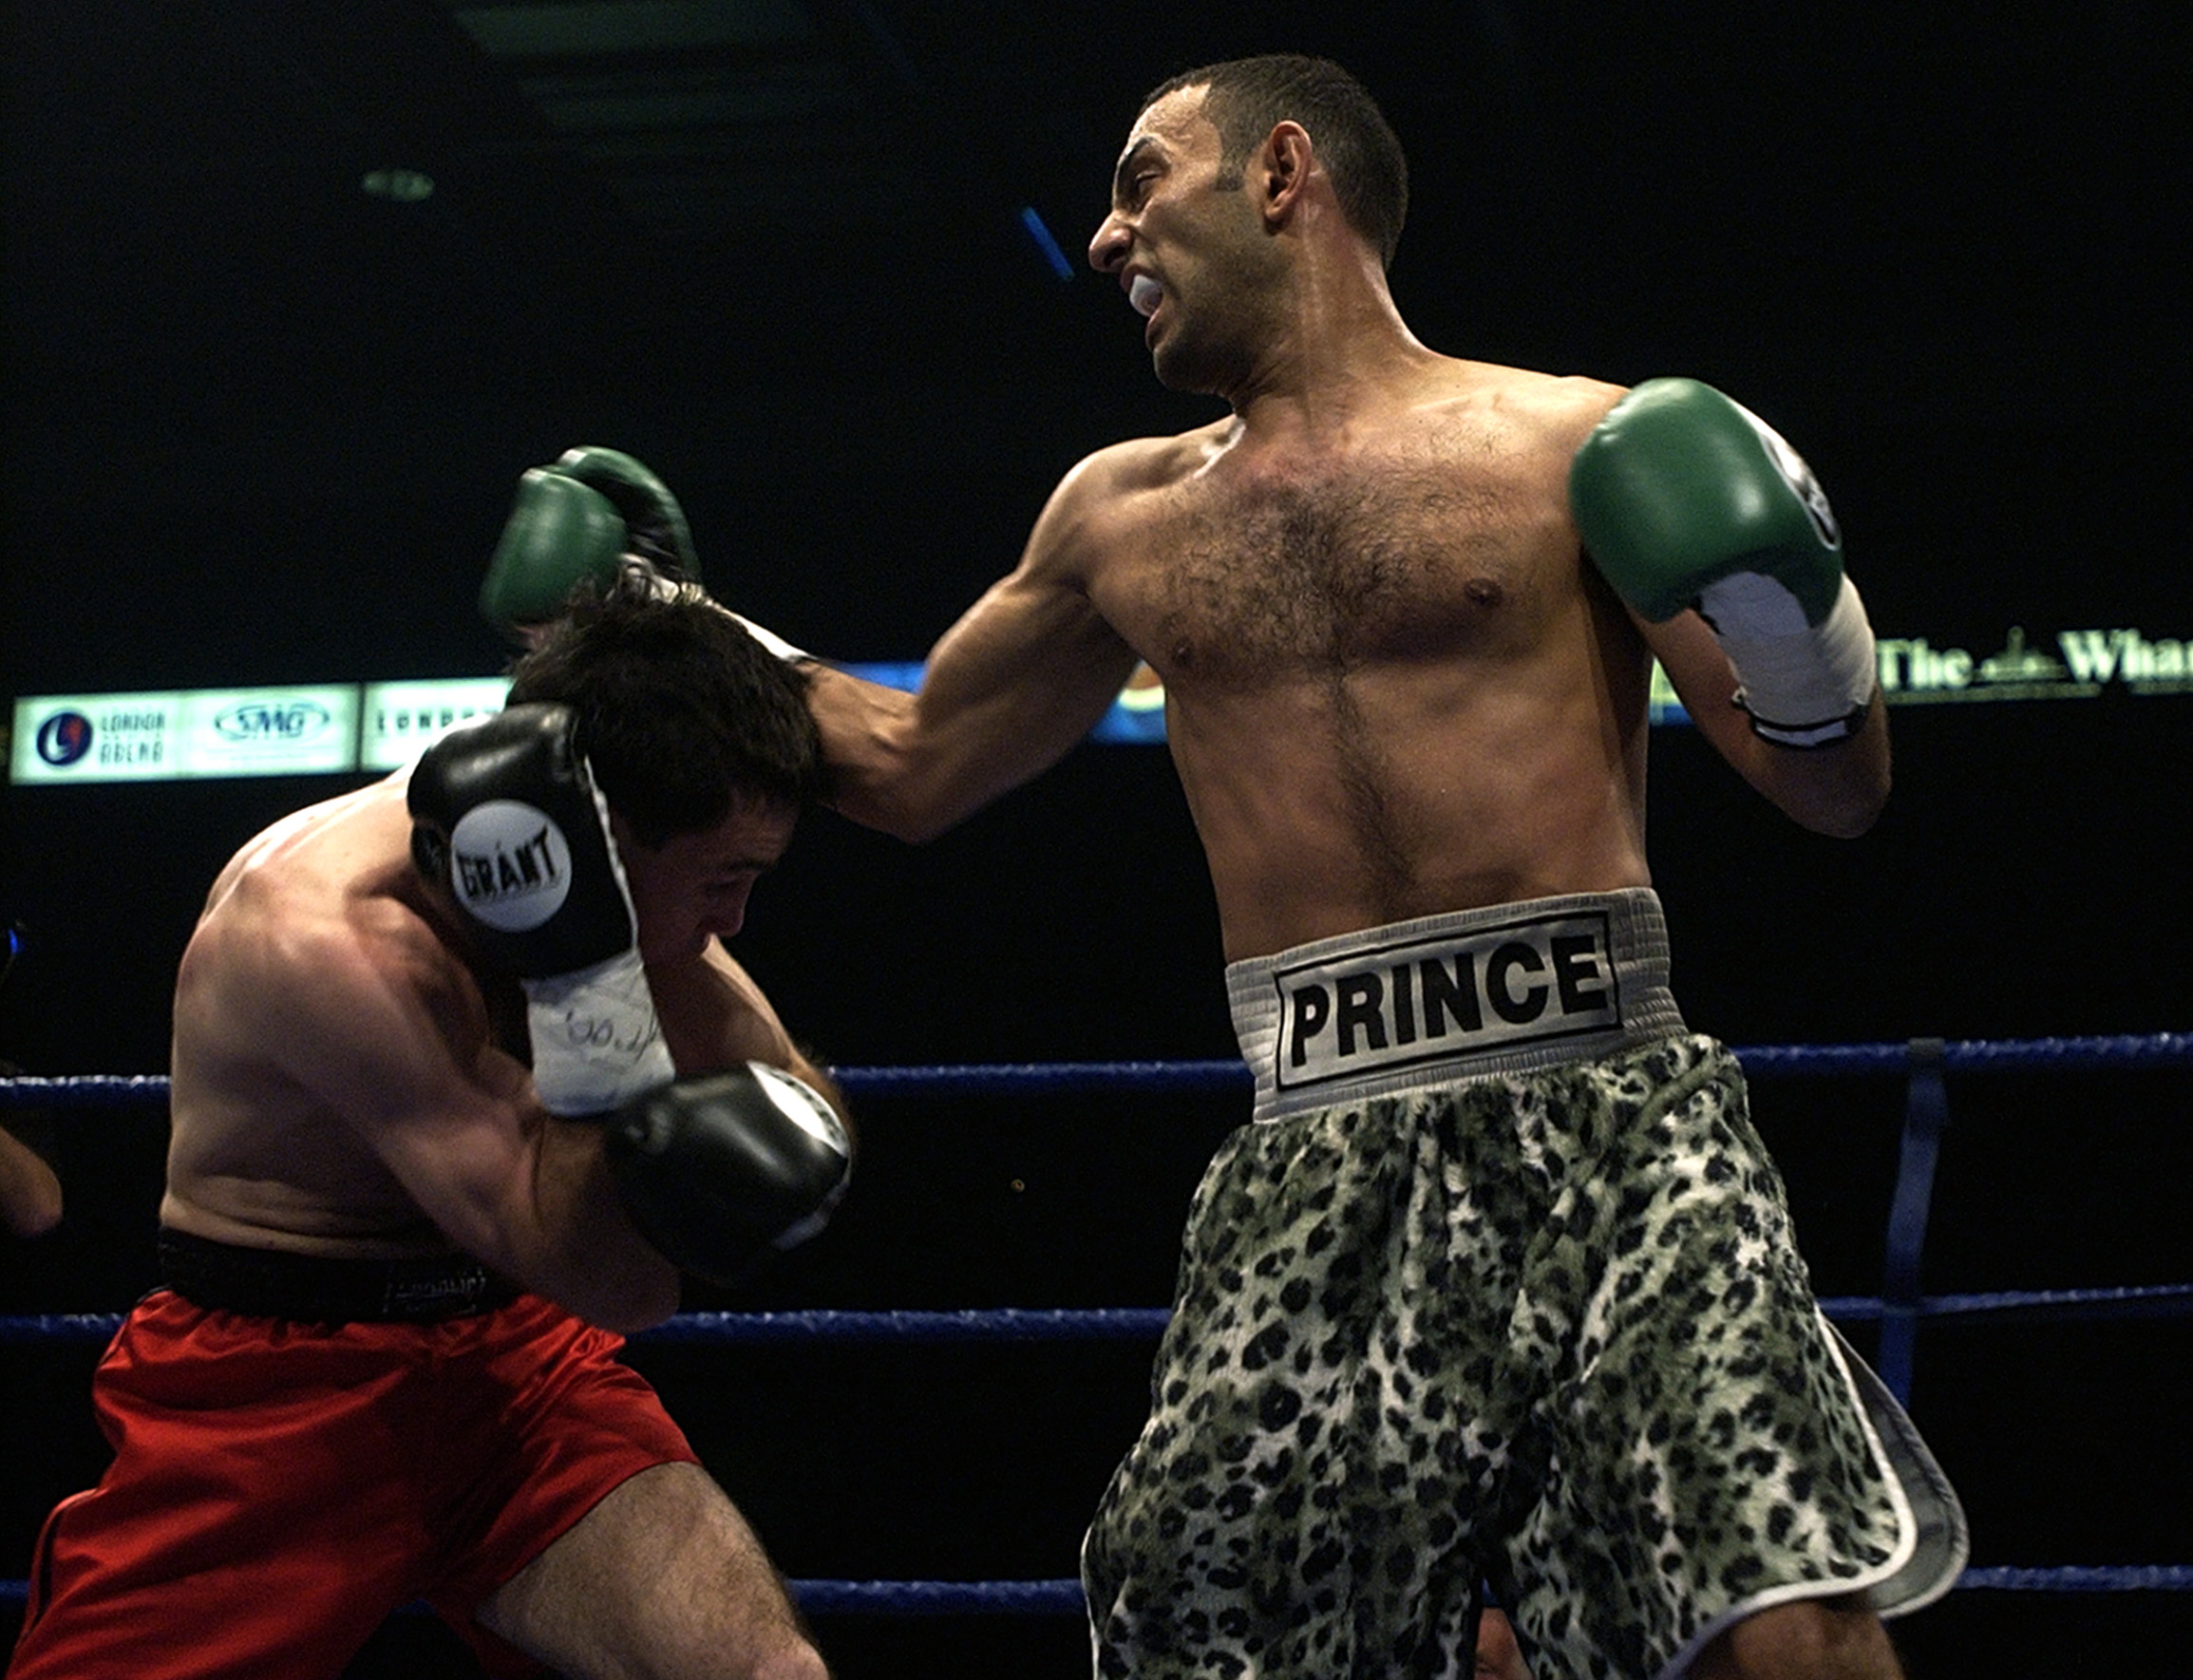 LONDON - May 18:  Prince Naseem Hamed (R) wins the IBO world featherweight title against Manuel Calvo at the London Arena in England on May 18, 2002. DIGITAL IMAGE (Photo by John Gichigi/Getty Images)